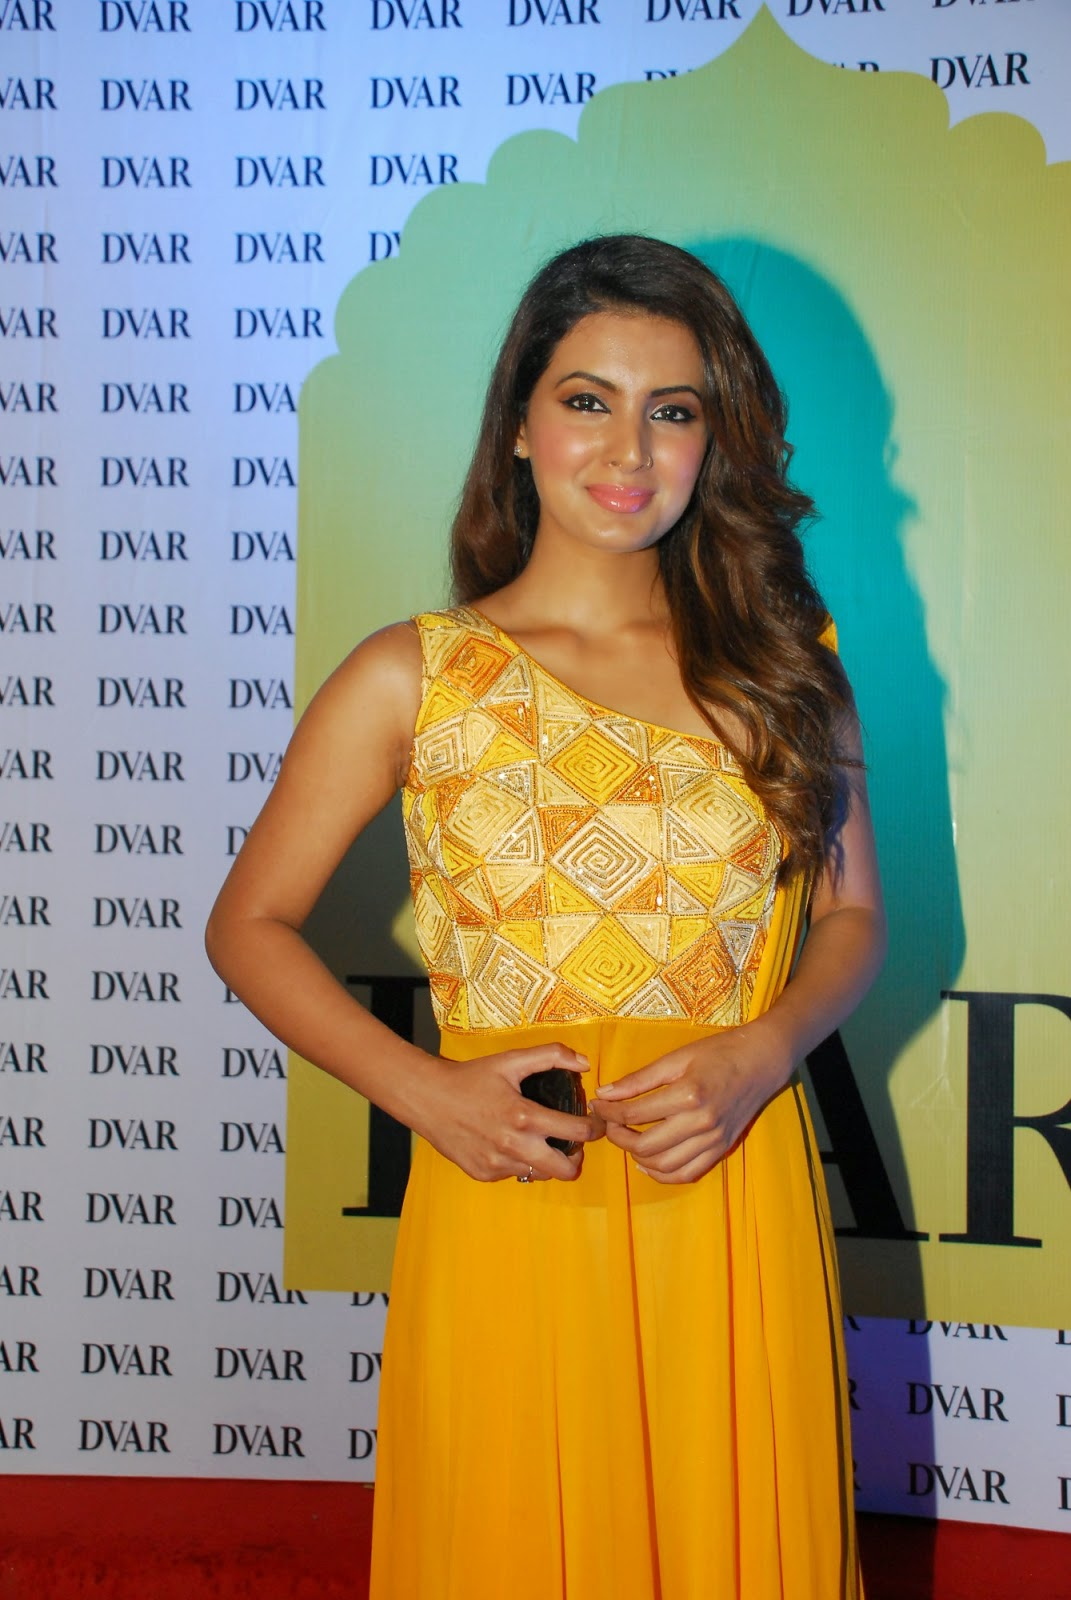 Geeta Basra at DVAR Photography and Fashion Exhibit Event